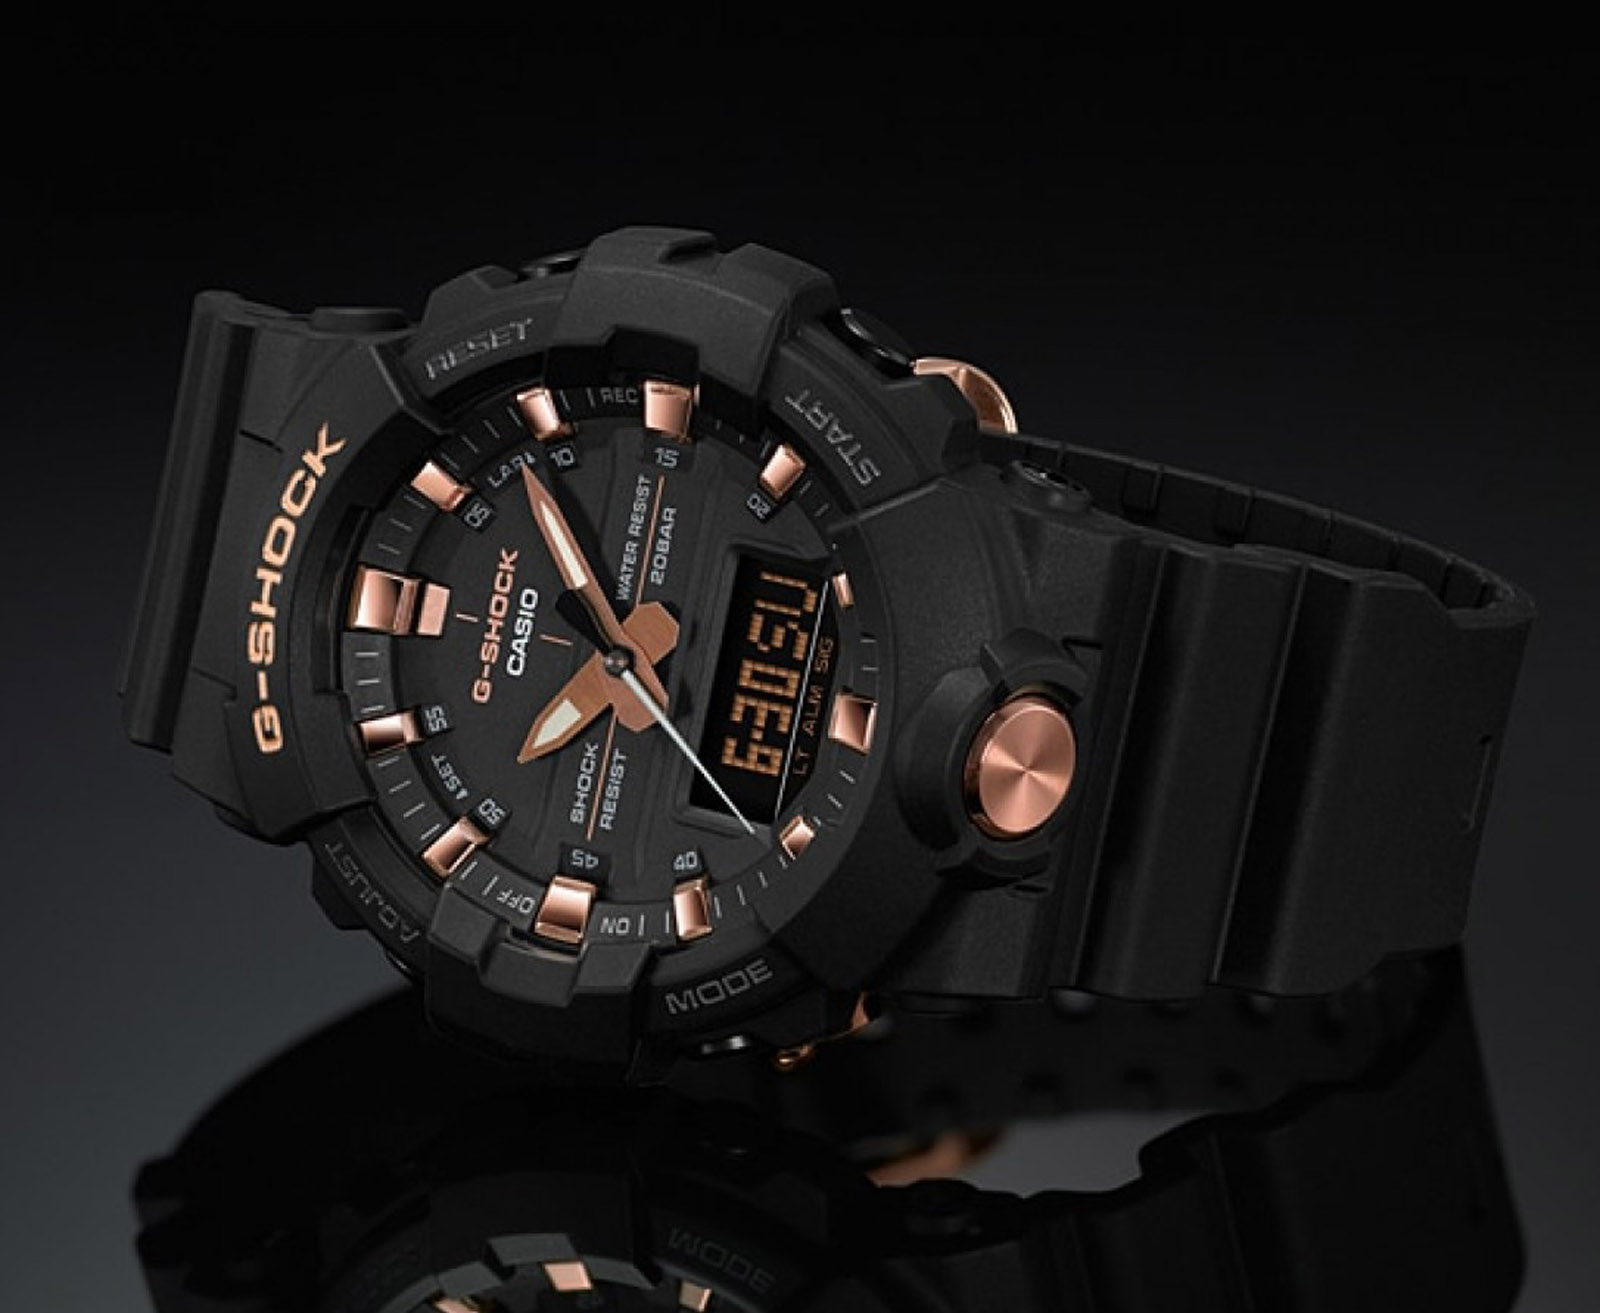 Casio G-Shock GA-810B-1A4DR Special Color Models Digital Analog Dial Matte Black Resin Strap Machtwatch